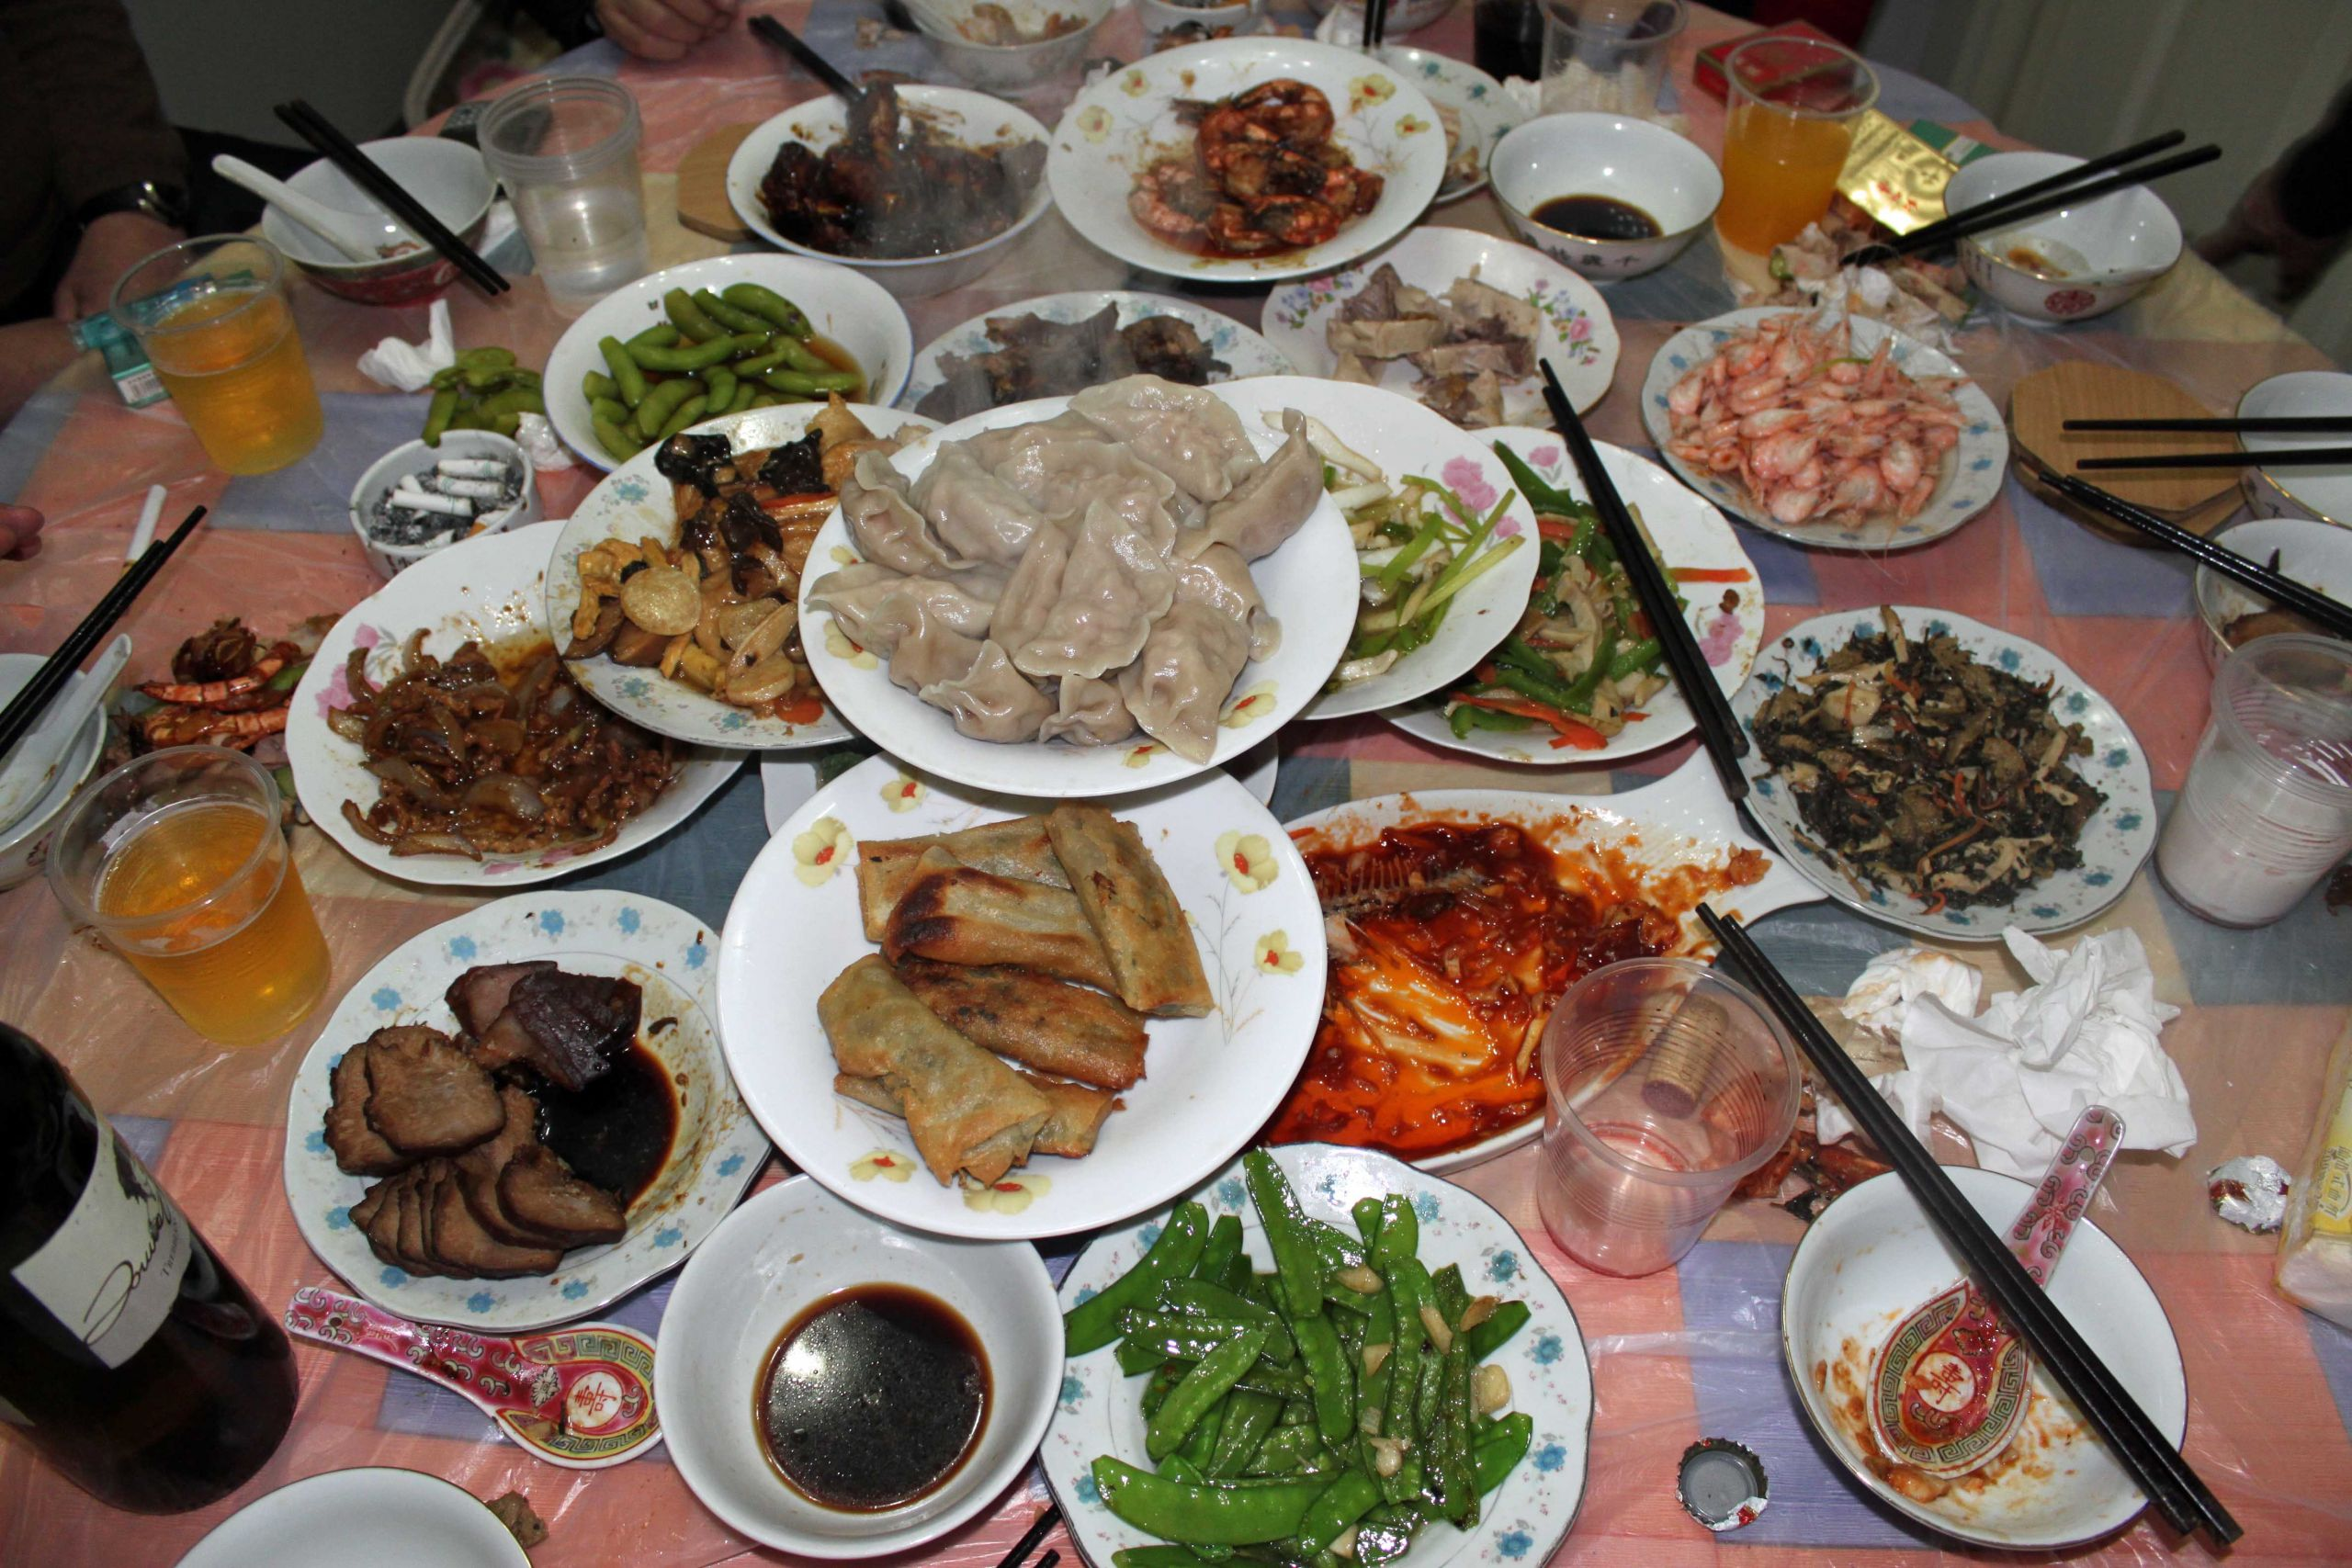 Chinese New Year Dinner  新年快乐 Xin Nian Kuai le Happy Chinese New Year